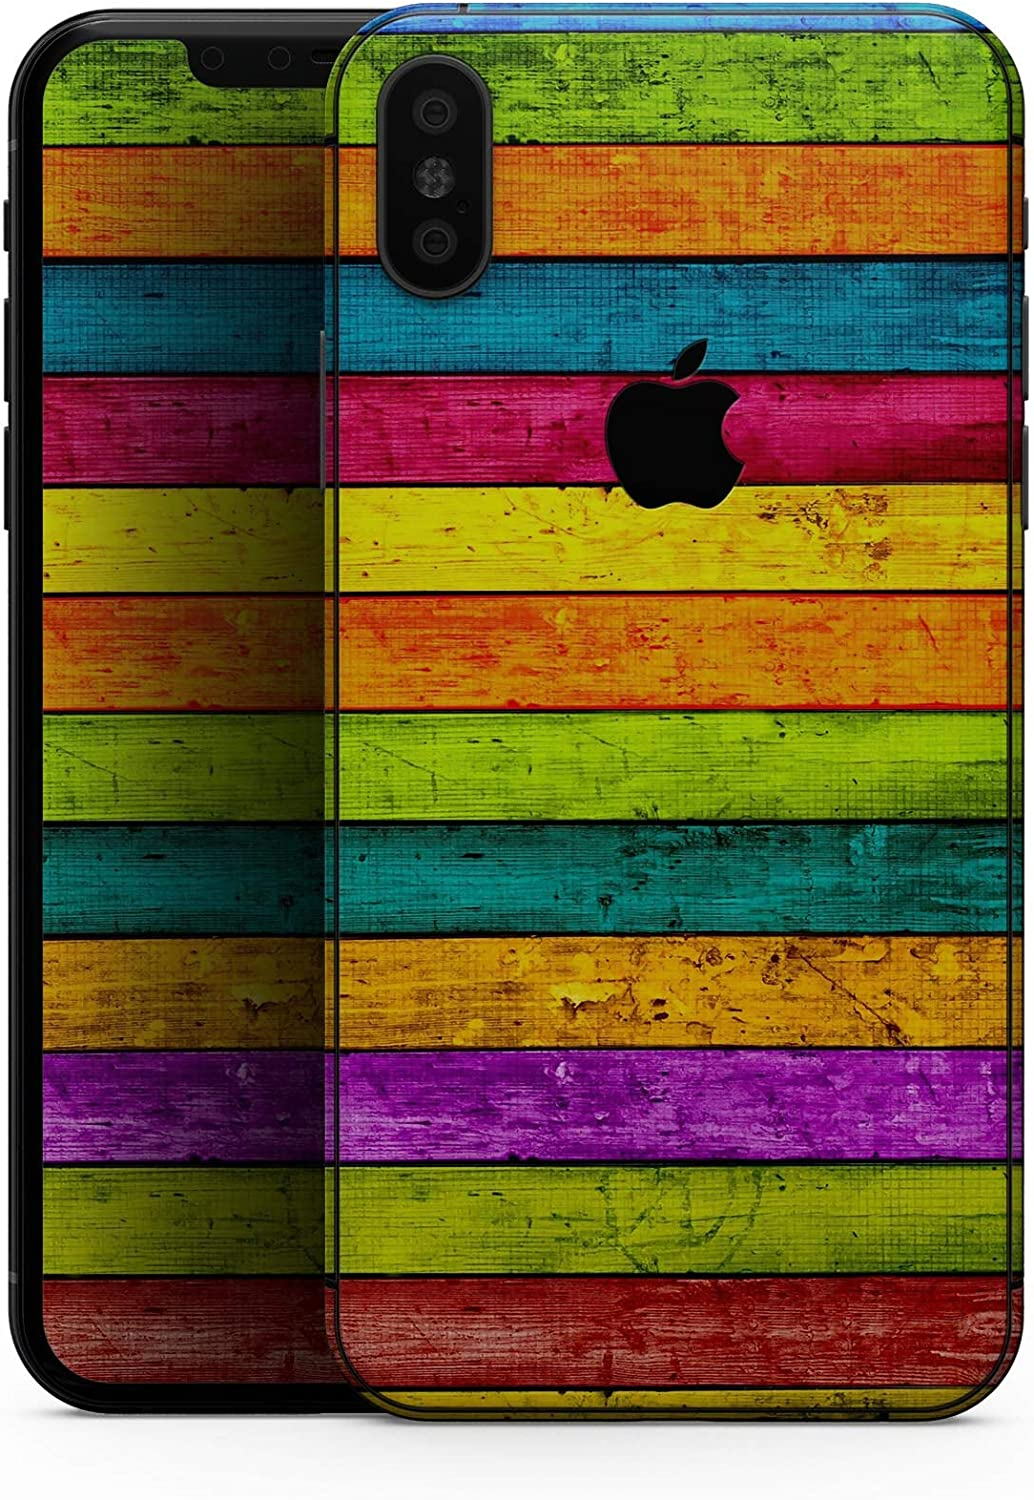 Neon Wood Planks - Design Skinz Premium Skin Decal Wrap for The iPhone 5s or SE